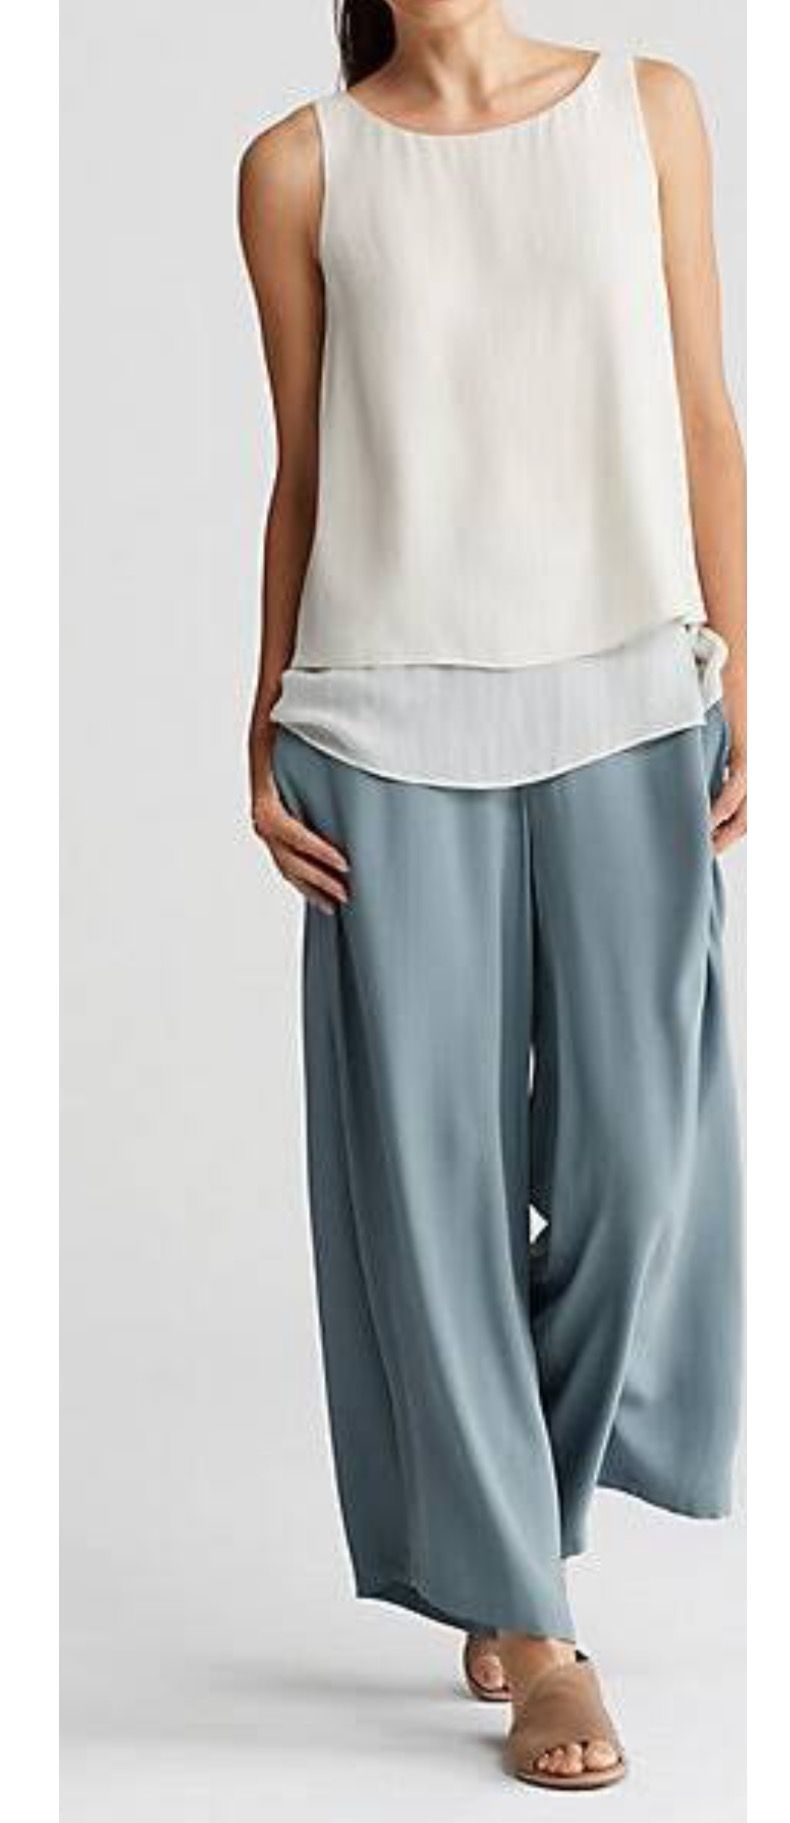 EF wide pants | Eileen fisher | Pinterest | Ropa, Blusas y ...